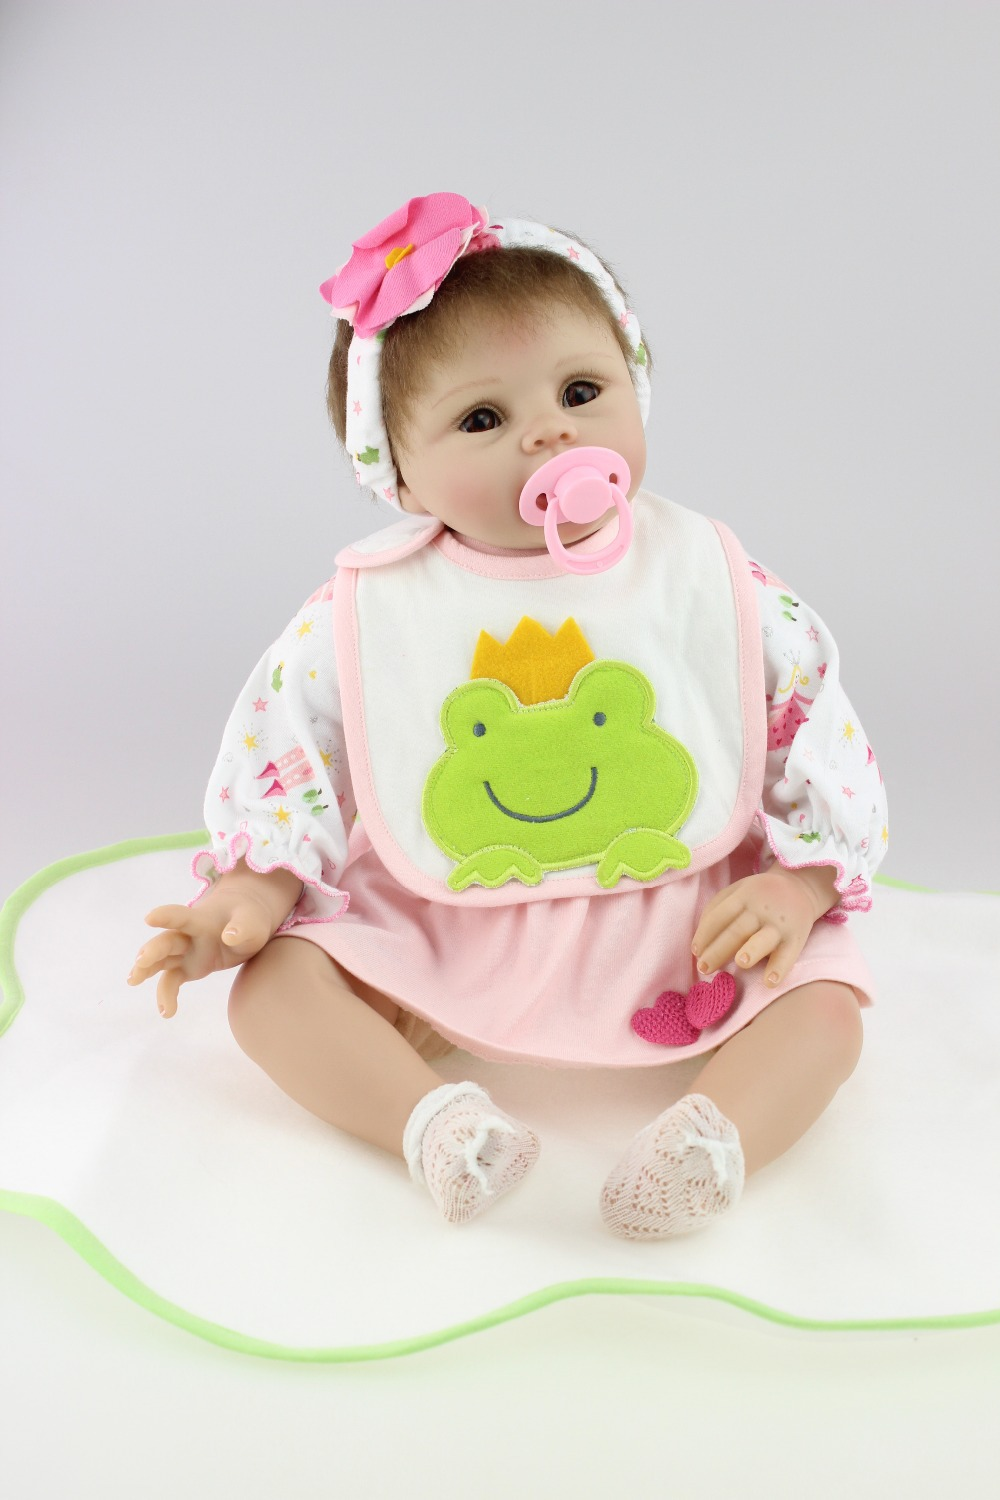 Free shipping hot-sale lifelike reborn baby dolls fashion doll silicone vinyl real soft gentle touch for children